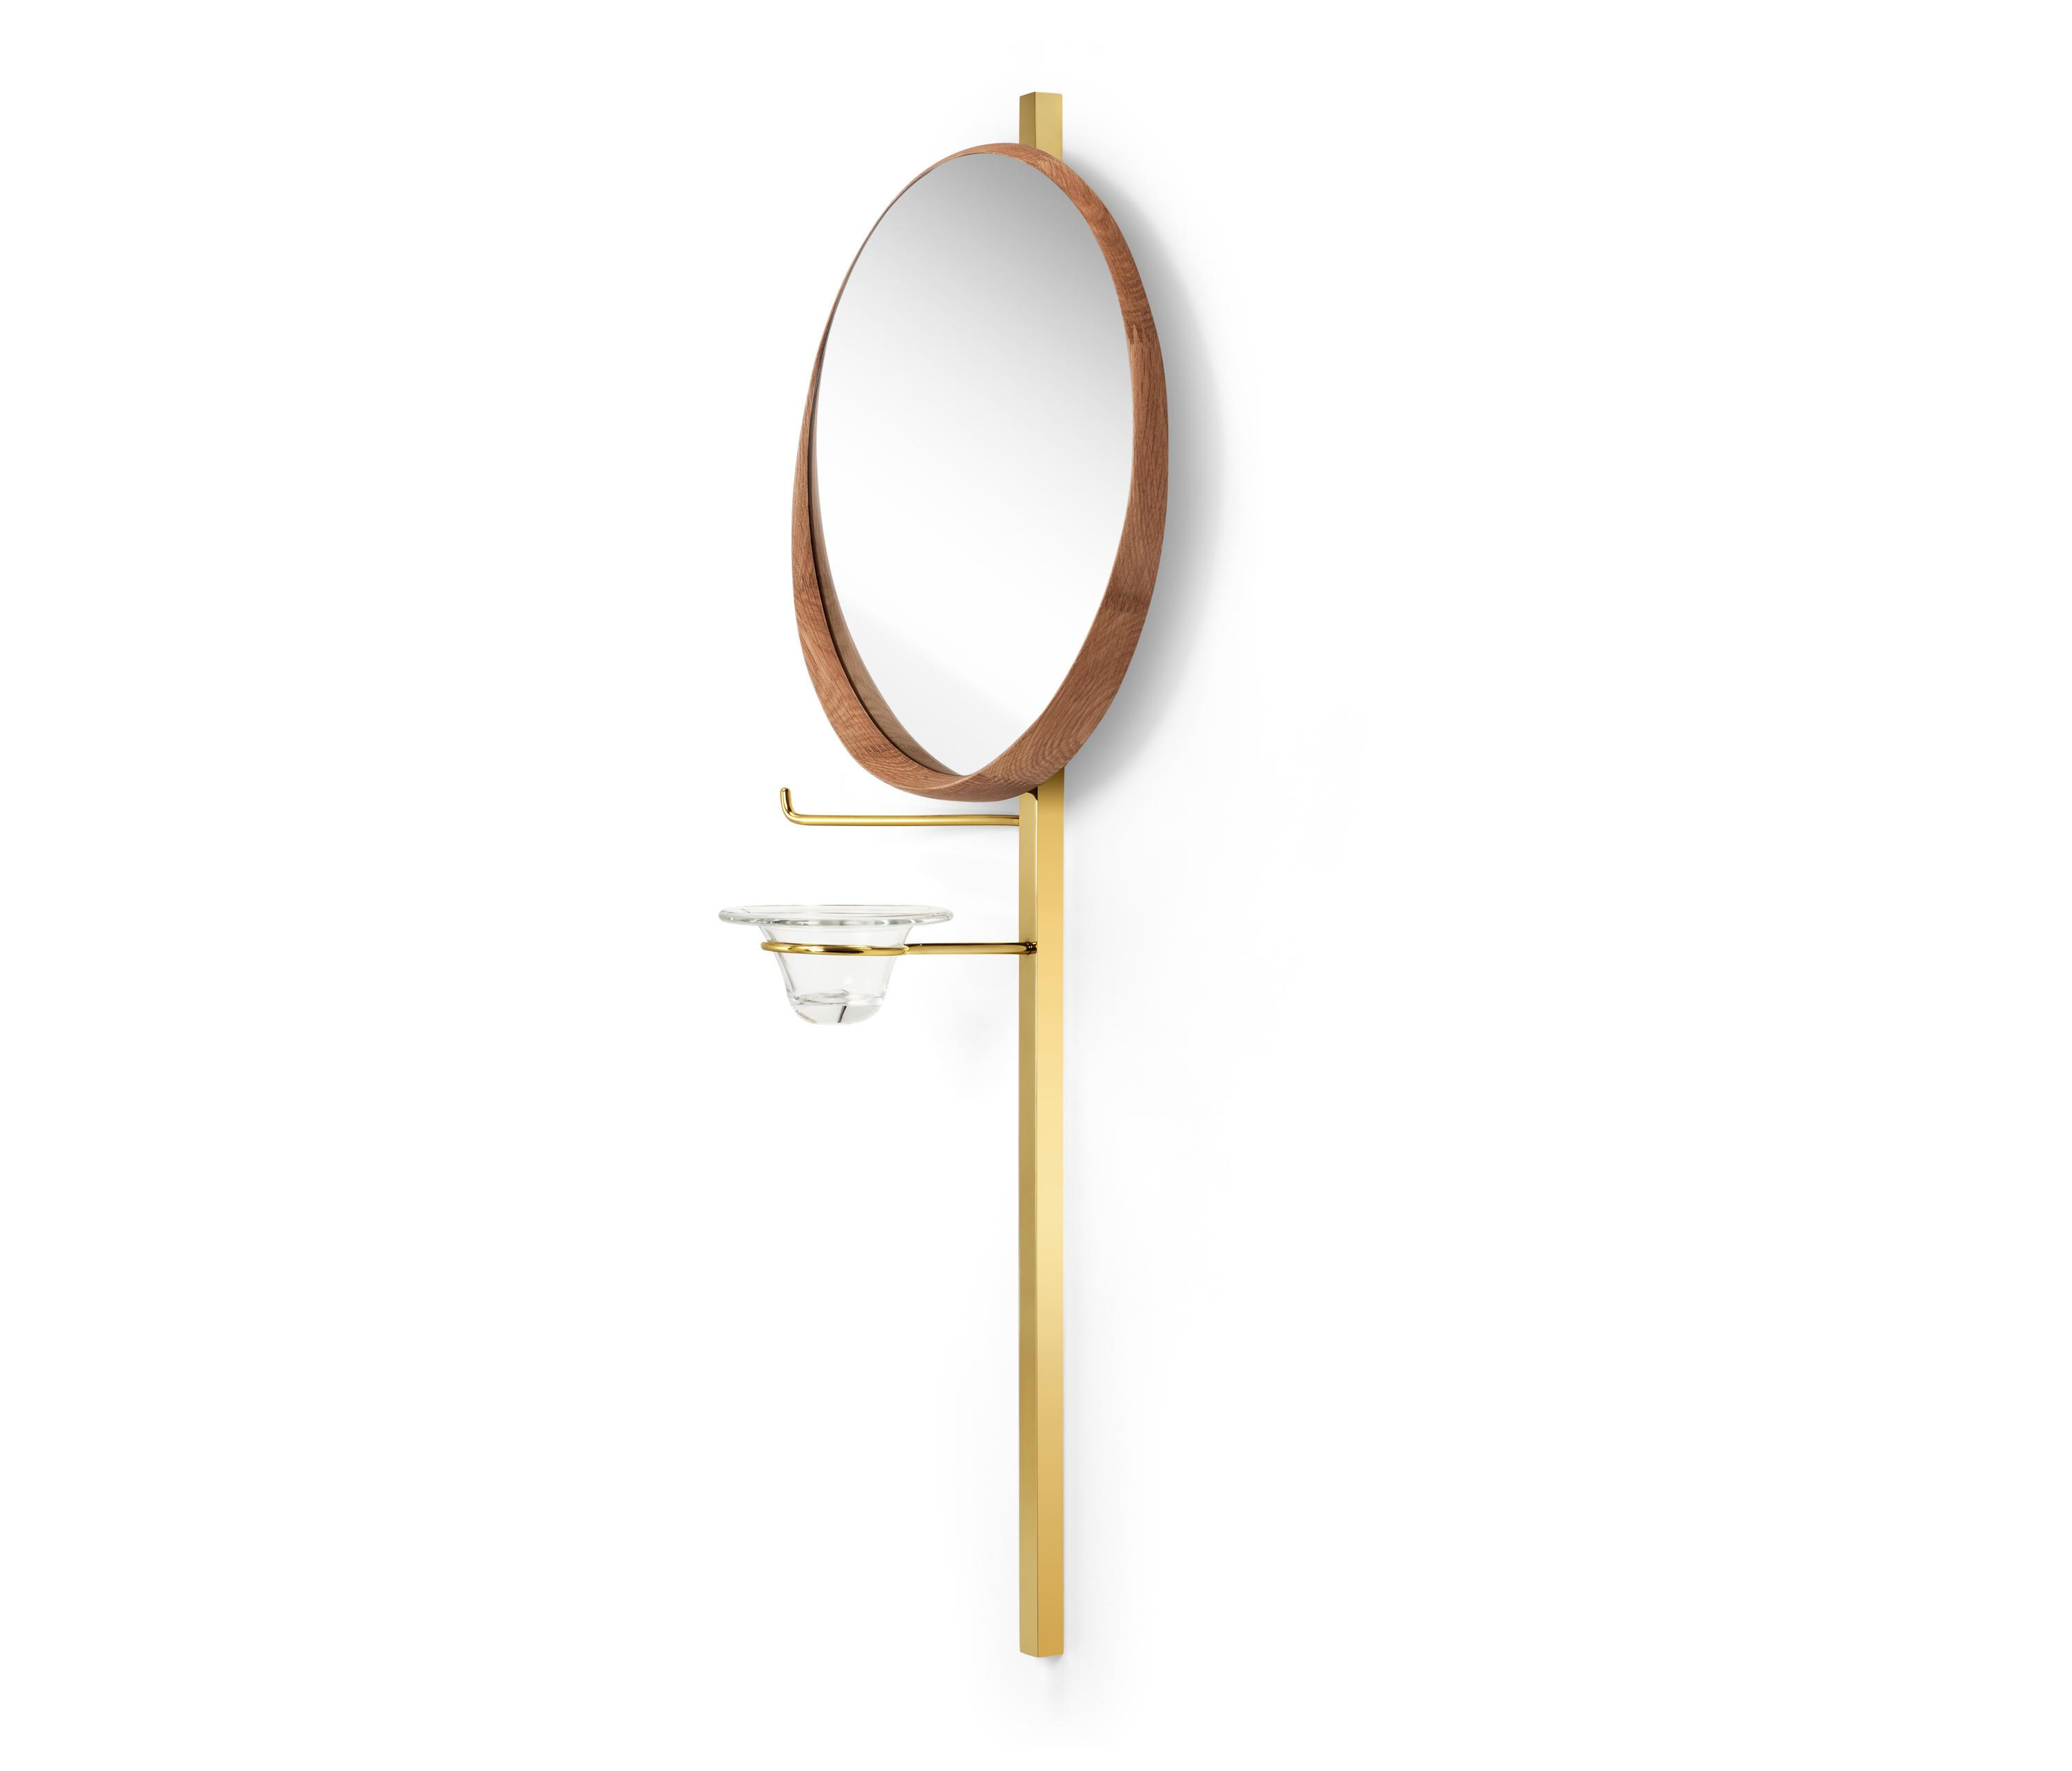 345 wall mirror by Jader Almeida - Kelly Christian Designs